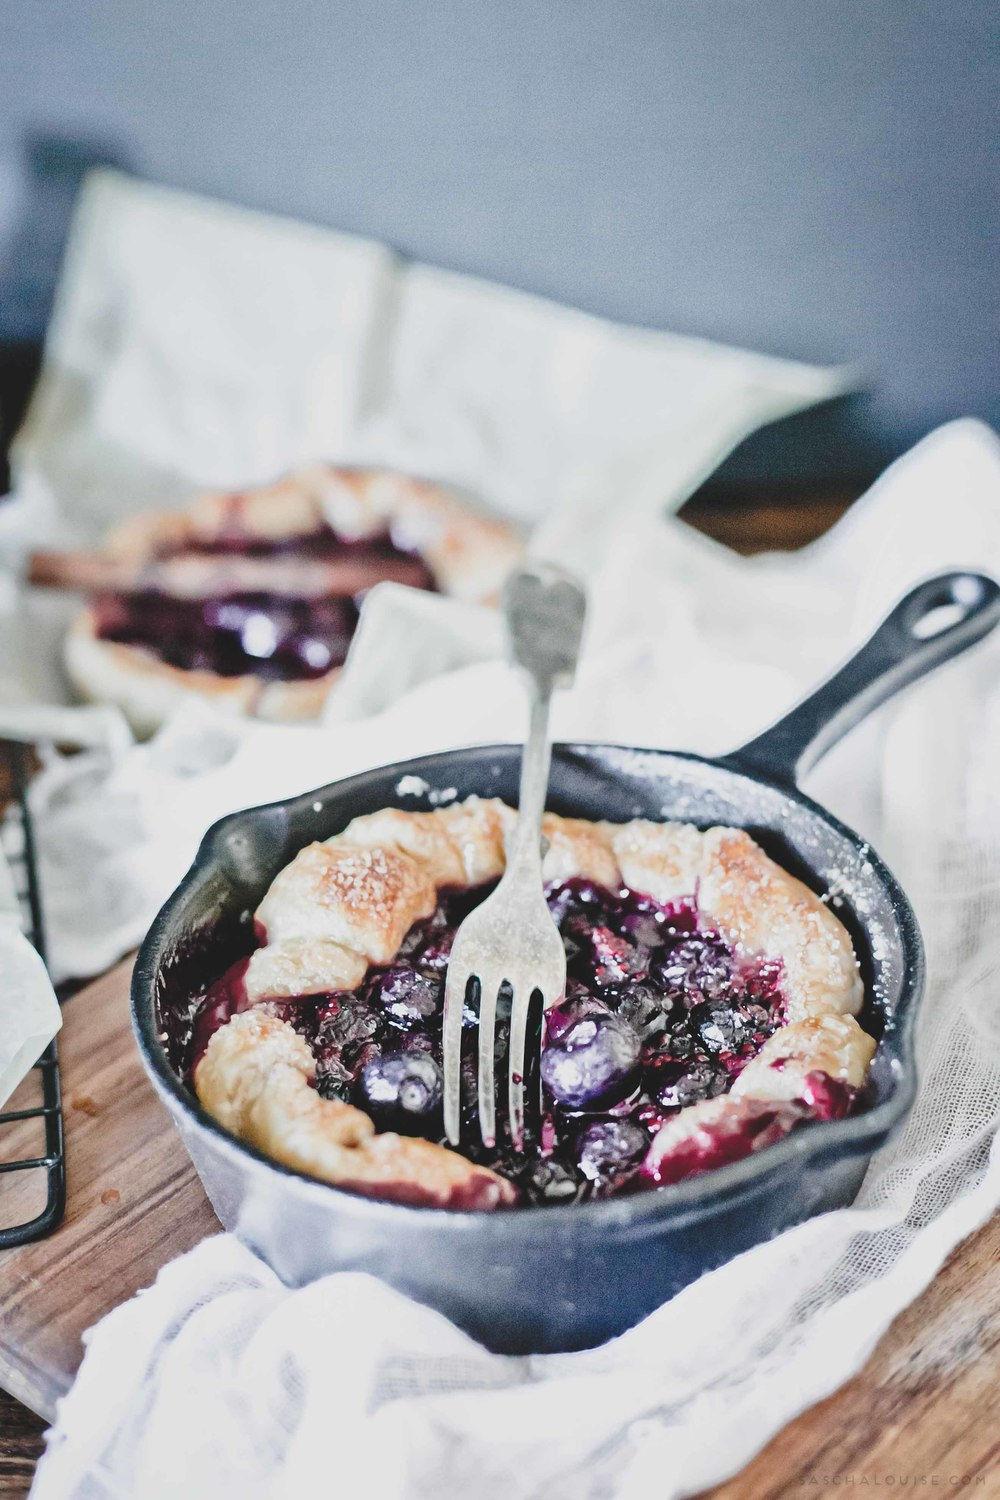 saschalouise.com - Rustic Blueberry Galette